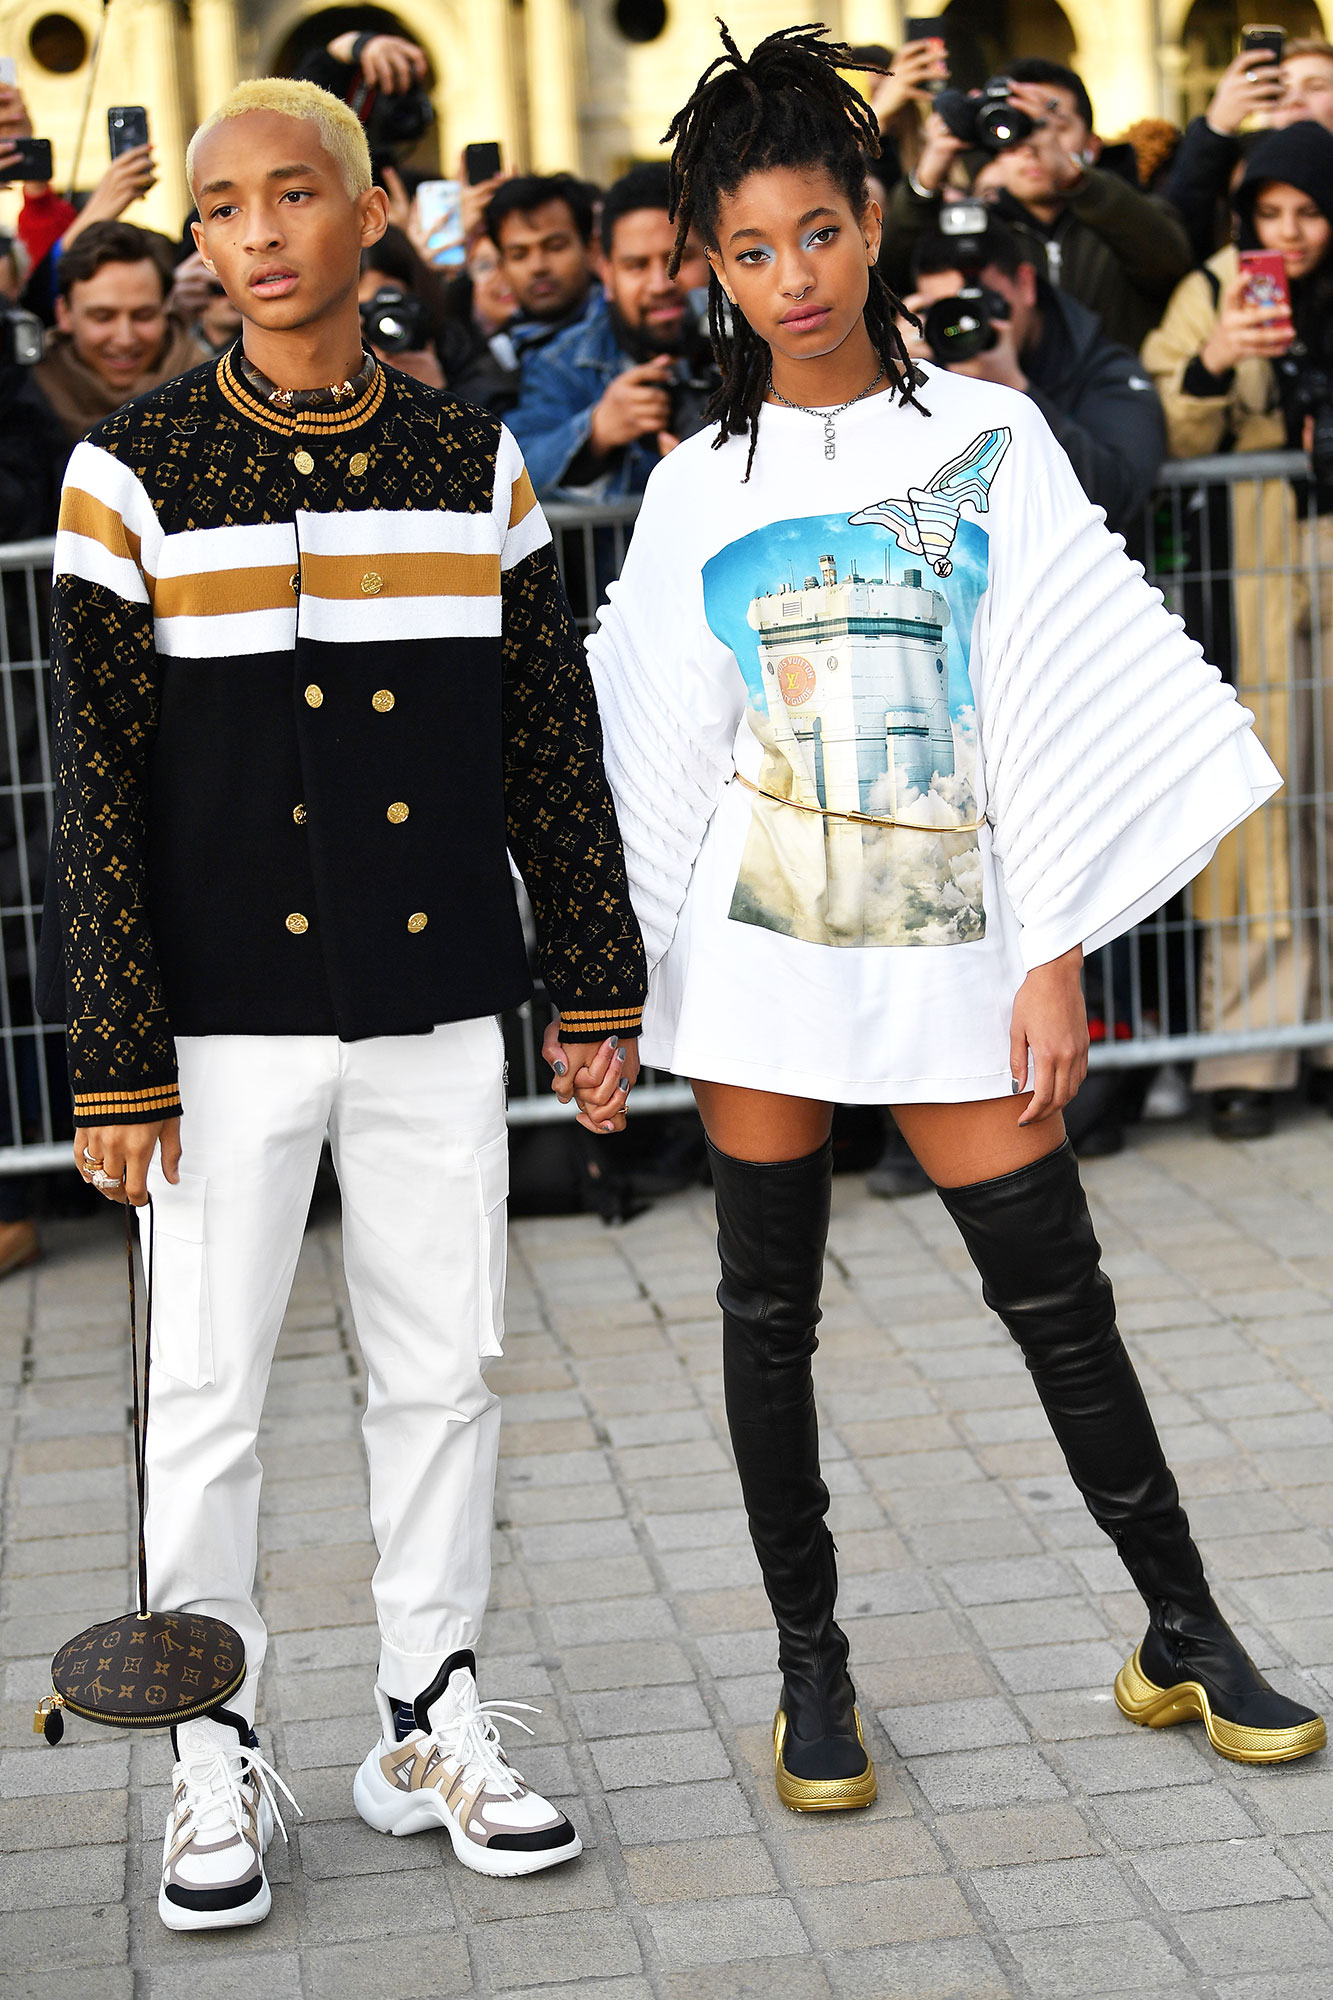 Jaden Smith Stars Closed Out Paris Fashion Week on a Sartorial High Note - The ever-stylish siblings looked super cool in their Moon Boot-inspired footwear at Louis Vuitton on Tuesday, March 5.